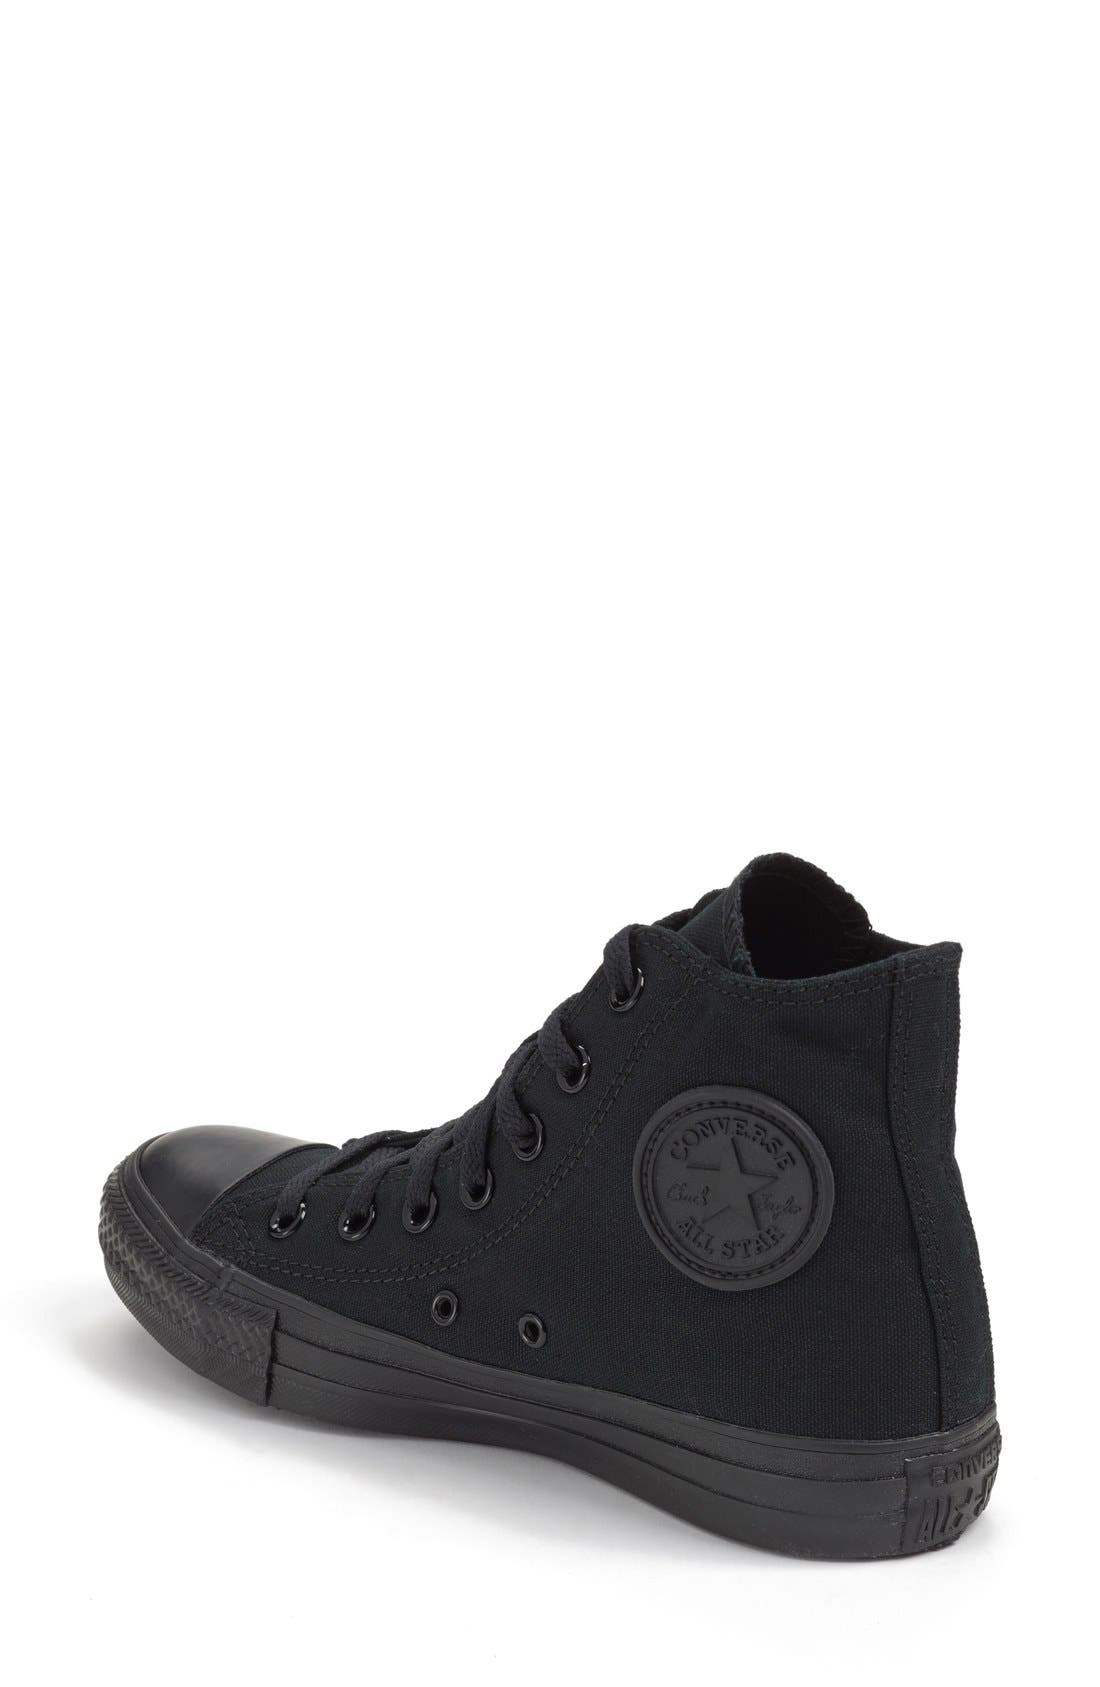 Chuck Taylor<sup>®</sup> All Star<sup>®</sup> Monochrome High Top Sneaker,                             Alternate thumbnail 4, color,                             001